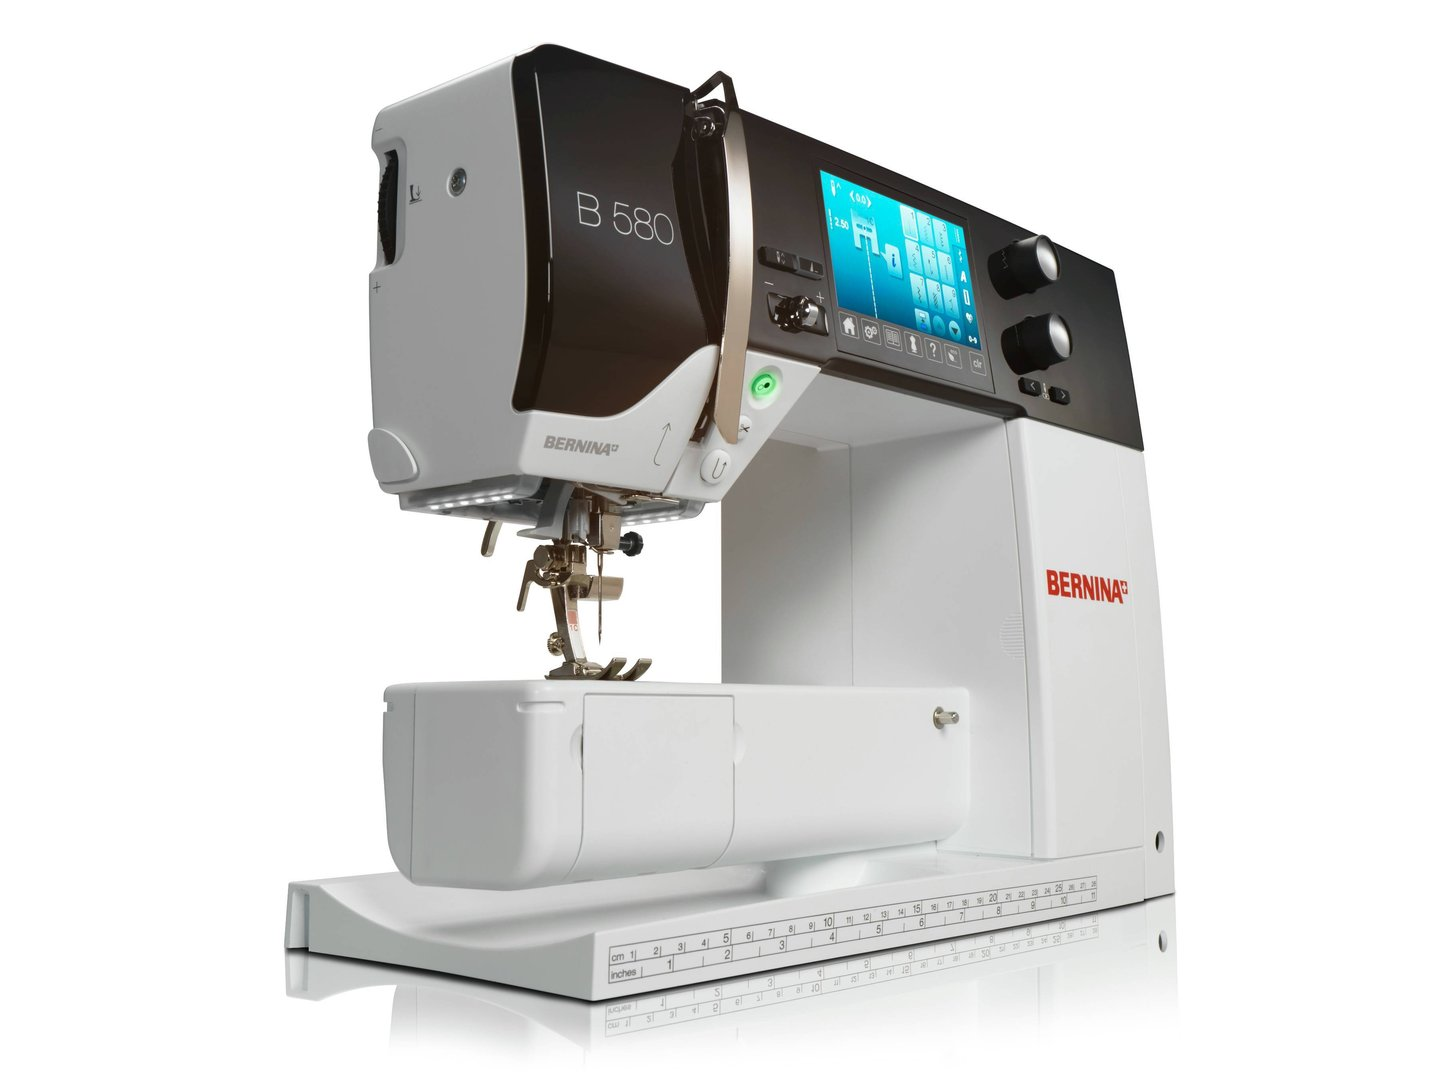 BERNINA B 580 Nähmaschine